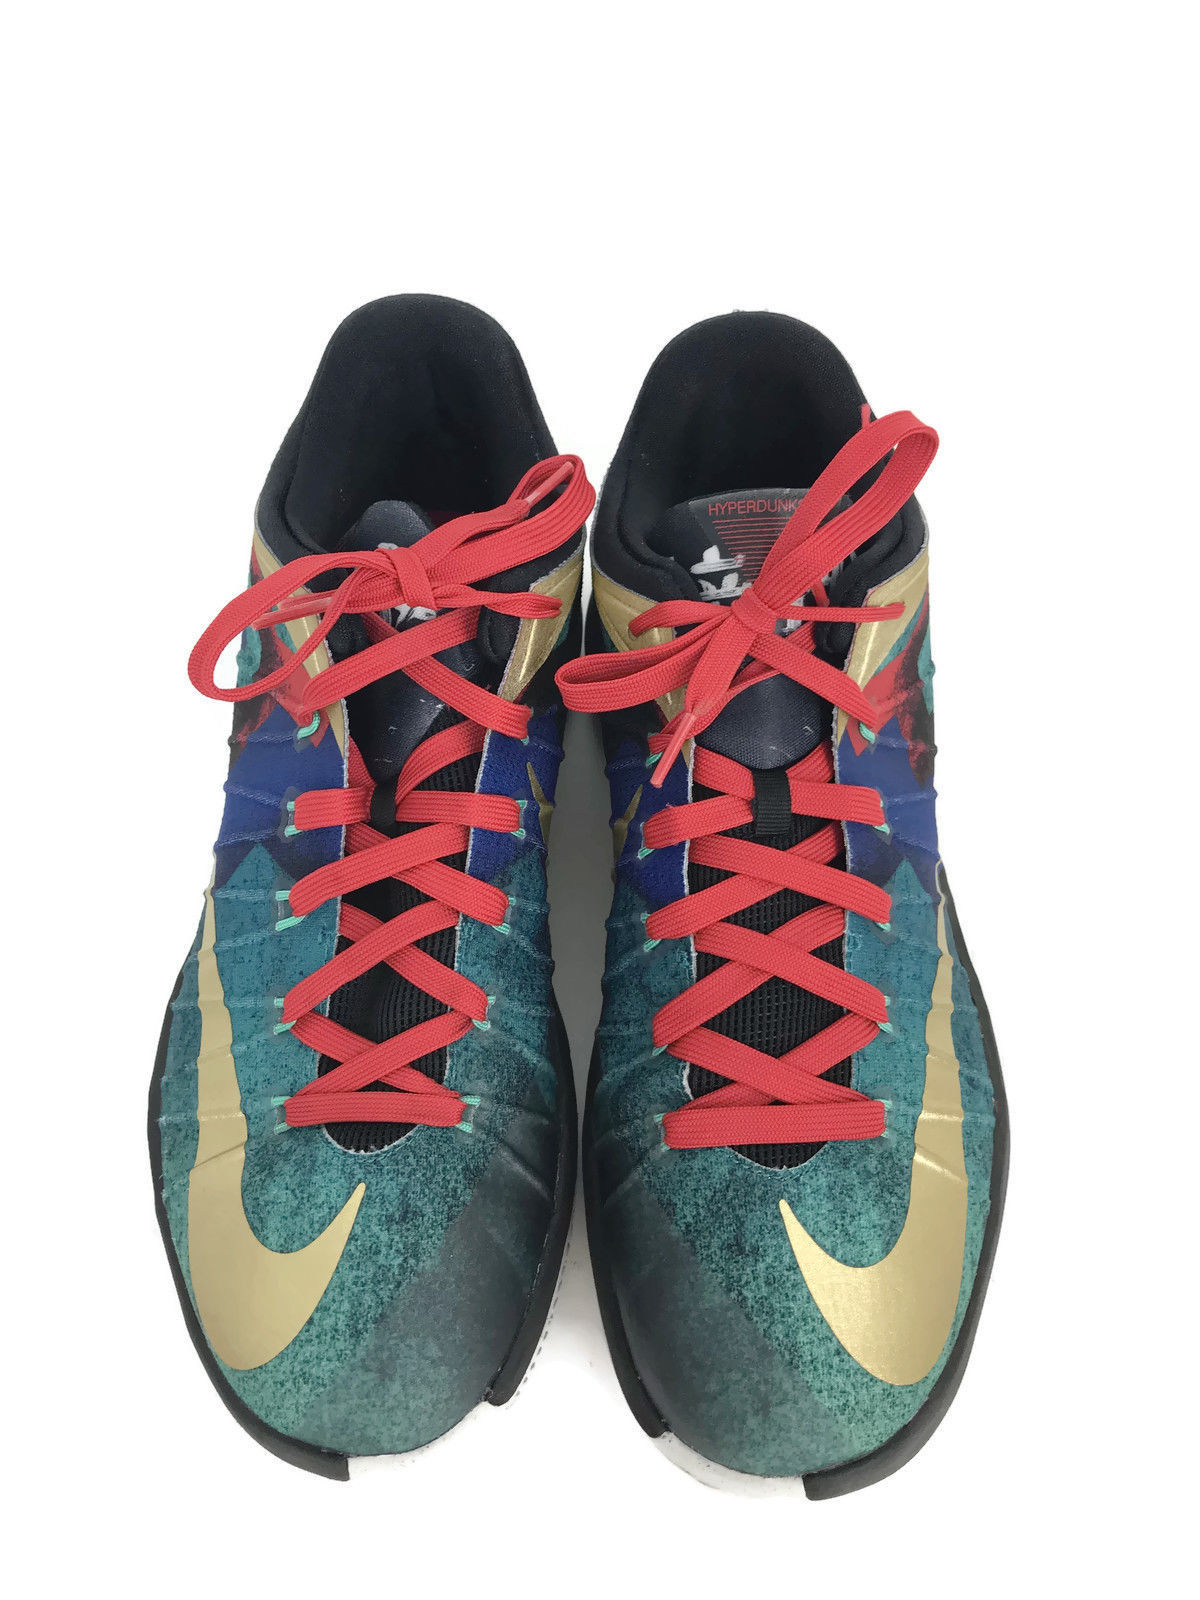 quality design d8479 9a35f ... 10  Nike Hyperdunk 2015 Low LMTD City Pack Beijing Men s Basketball  Shoes Size ...